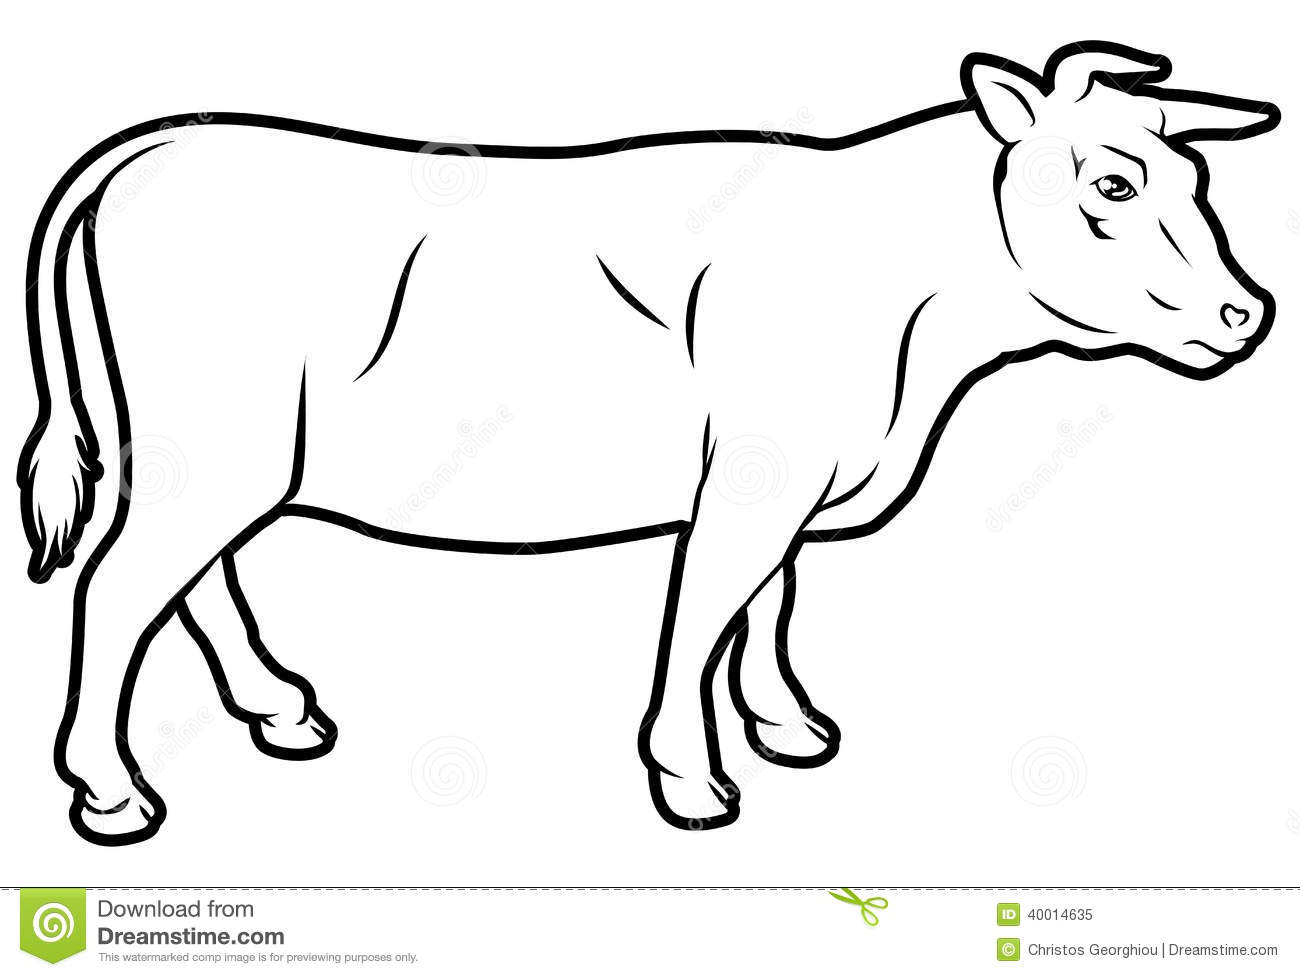 Artificial Insemination For Beef Cattle moreover Pork likewise Faux Filet De Boeuf Boucherie Charcuterie Fromagerie Carnivor together with Overview Of Soybean Processing And Production furthermore Eating Chilean Beef. on beef diagram